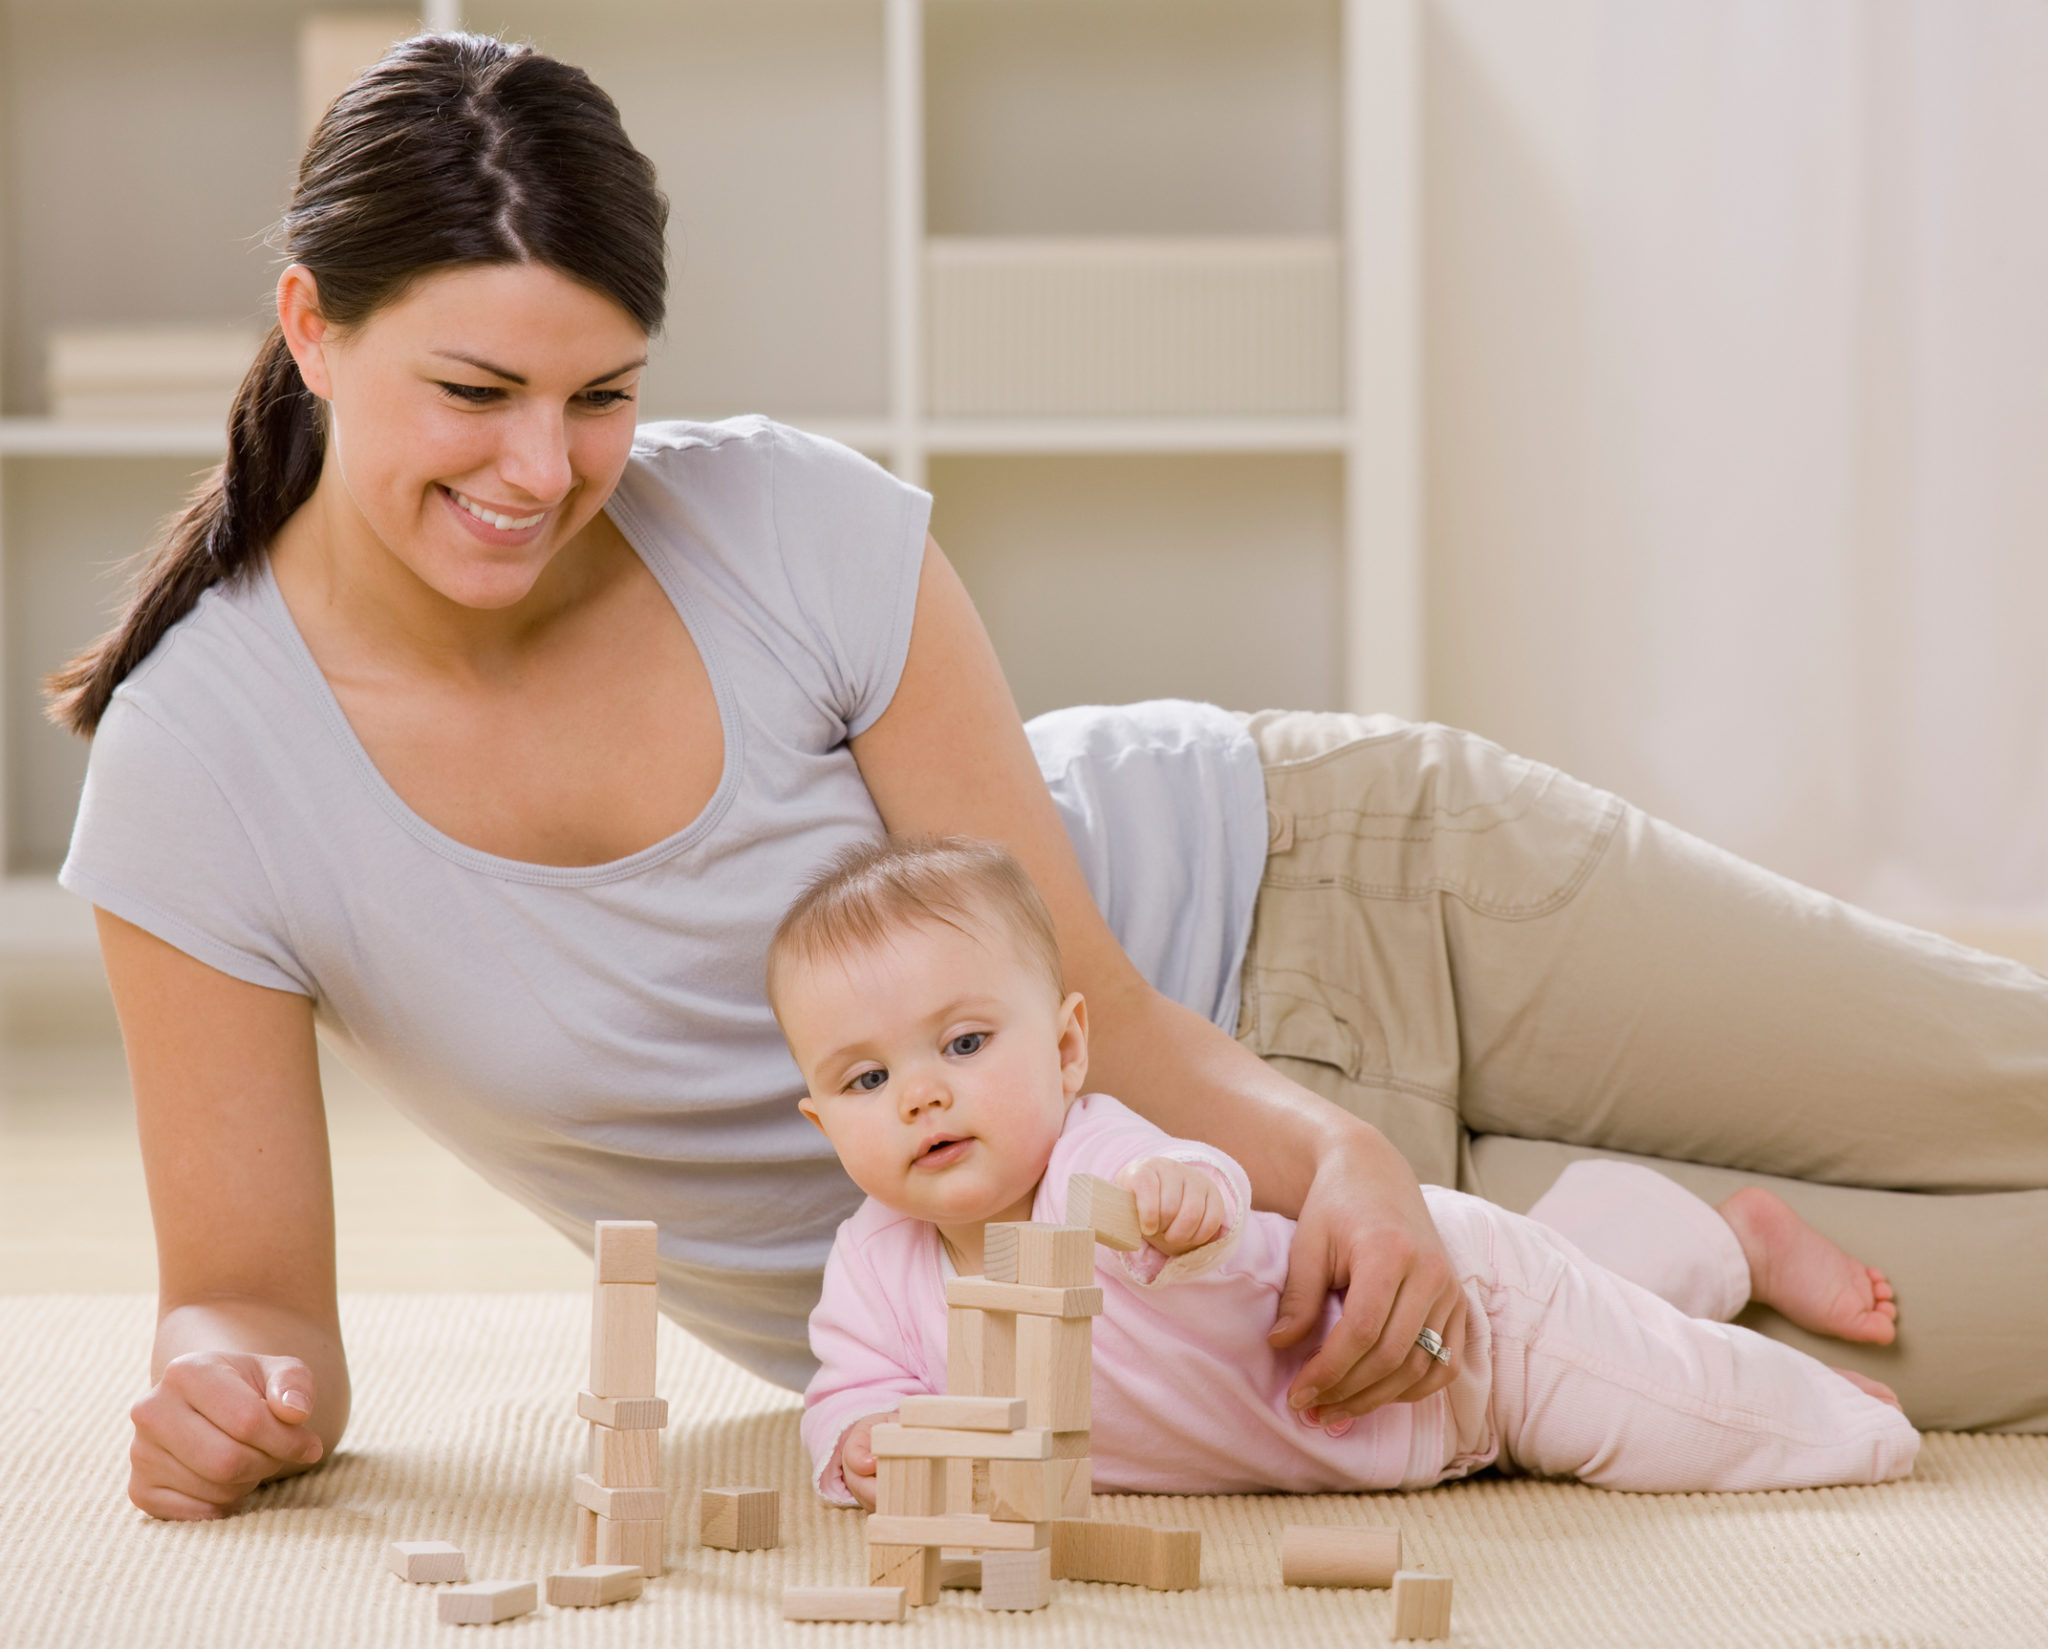 carpet cleaning Colorado Springs helps families be healther